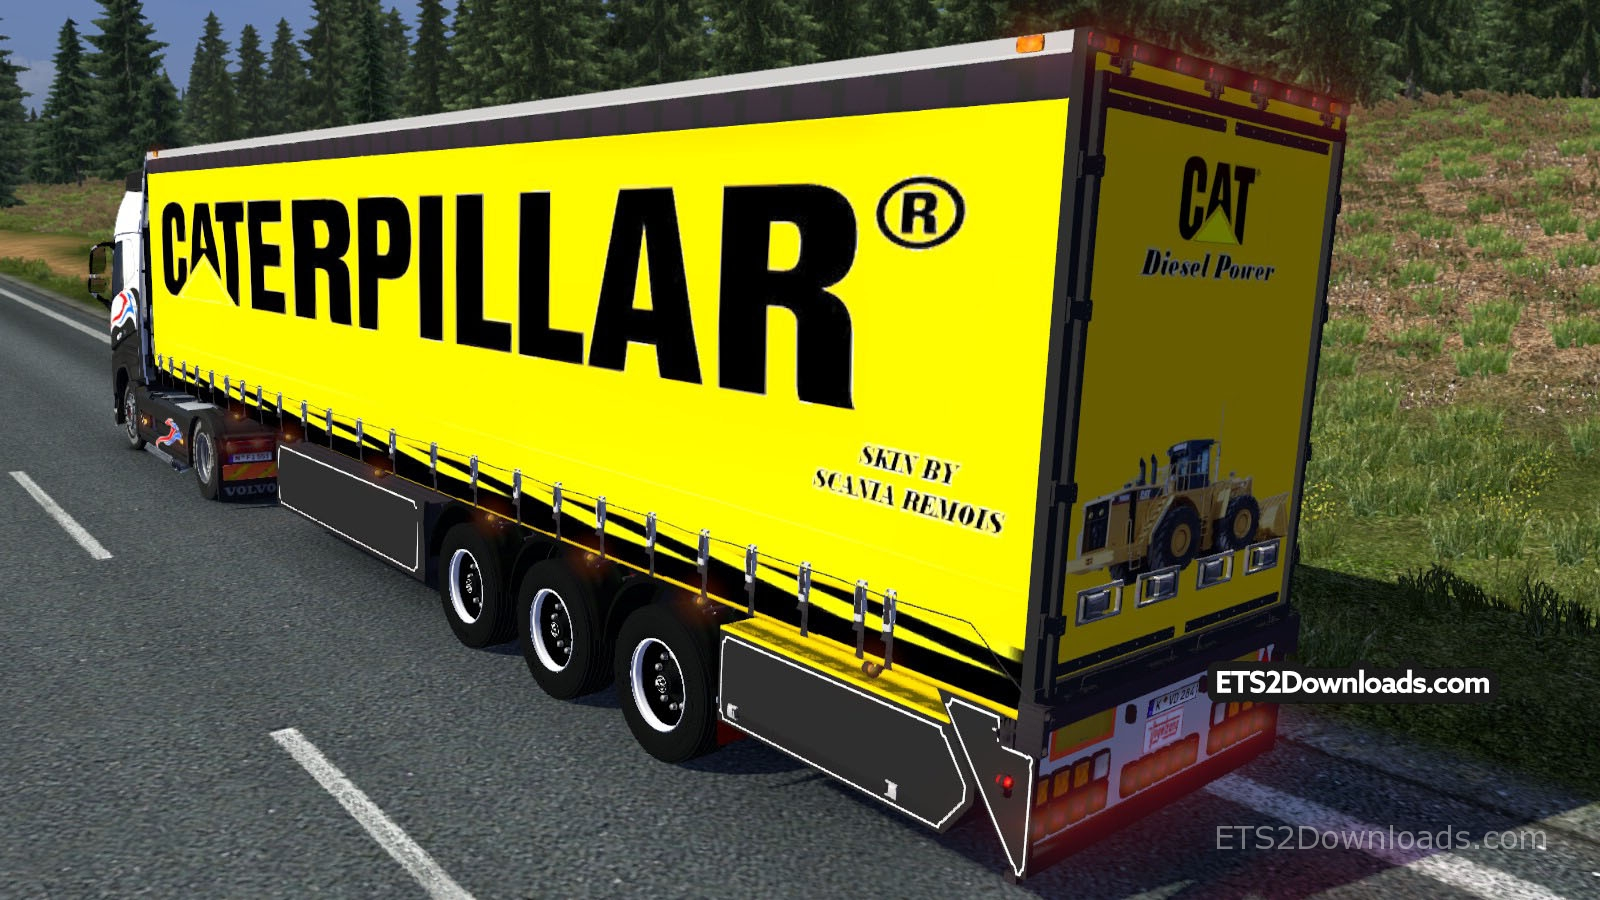 caterpillar-trailer